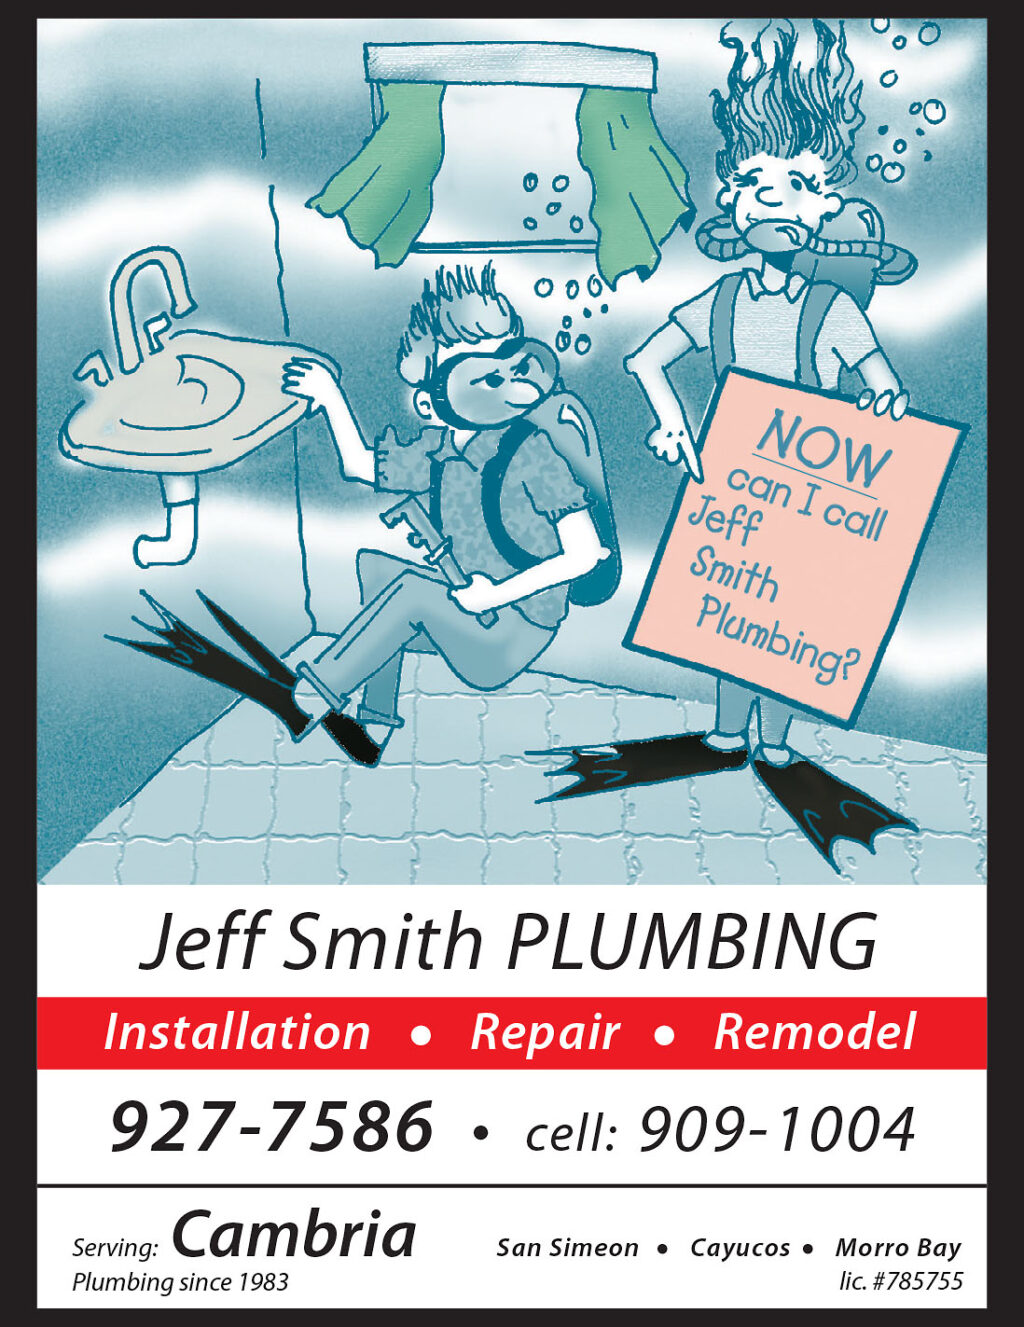 Jeff Smith Plumbing QP CDG 2019.jpg